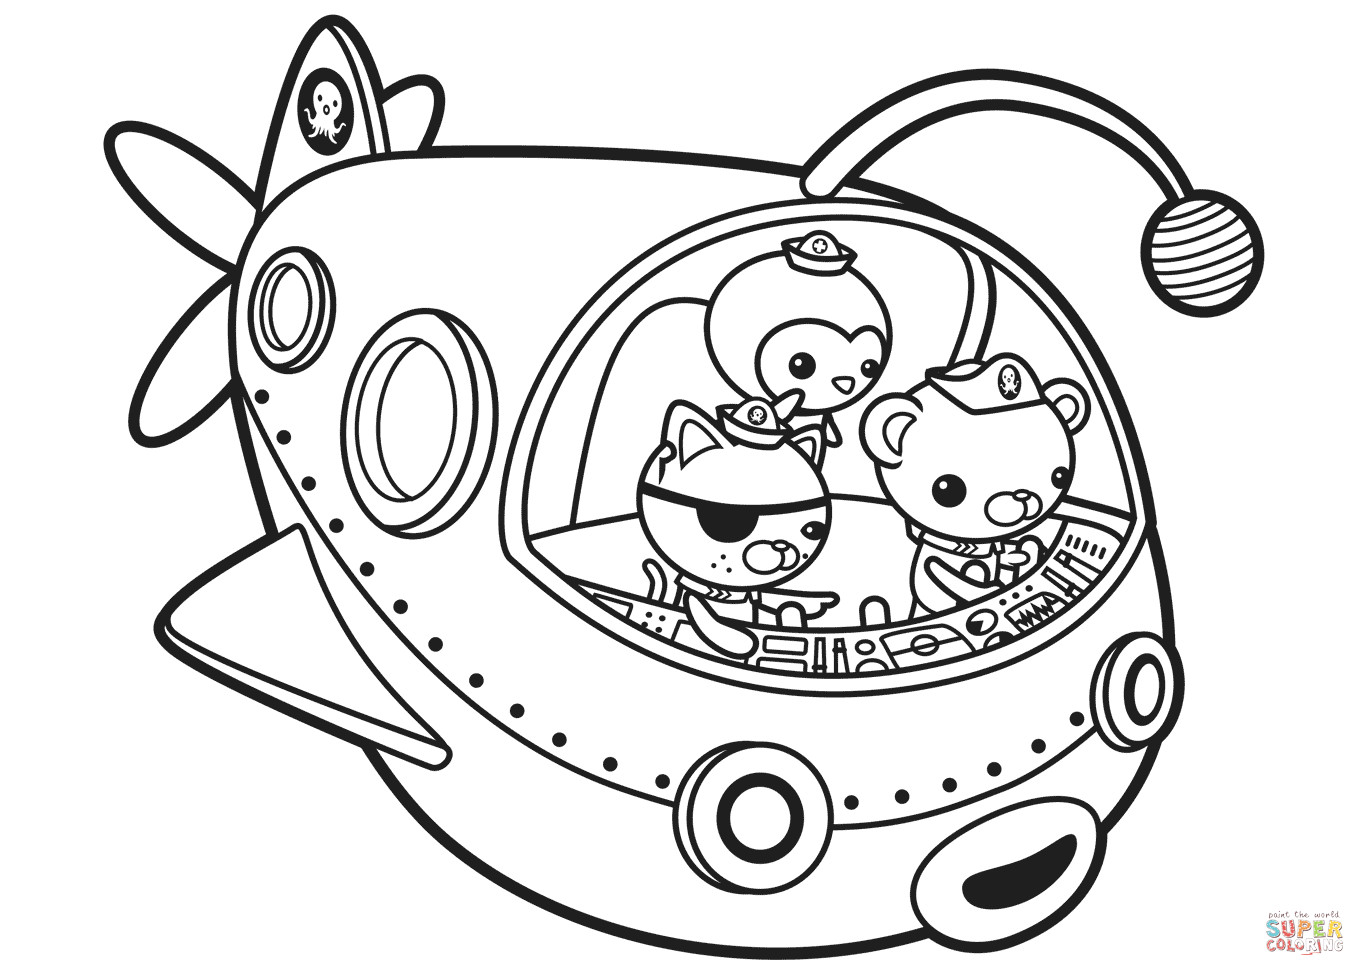 Octonauts Coloring Pages  Octonauts off to Adventure coloring page